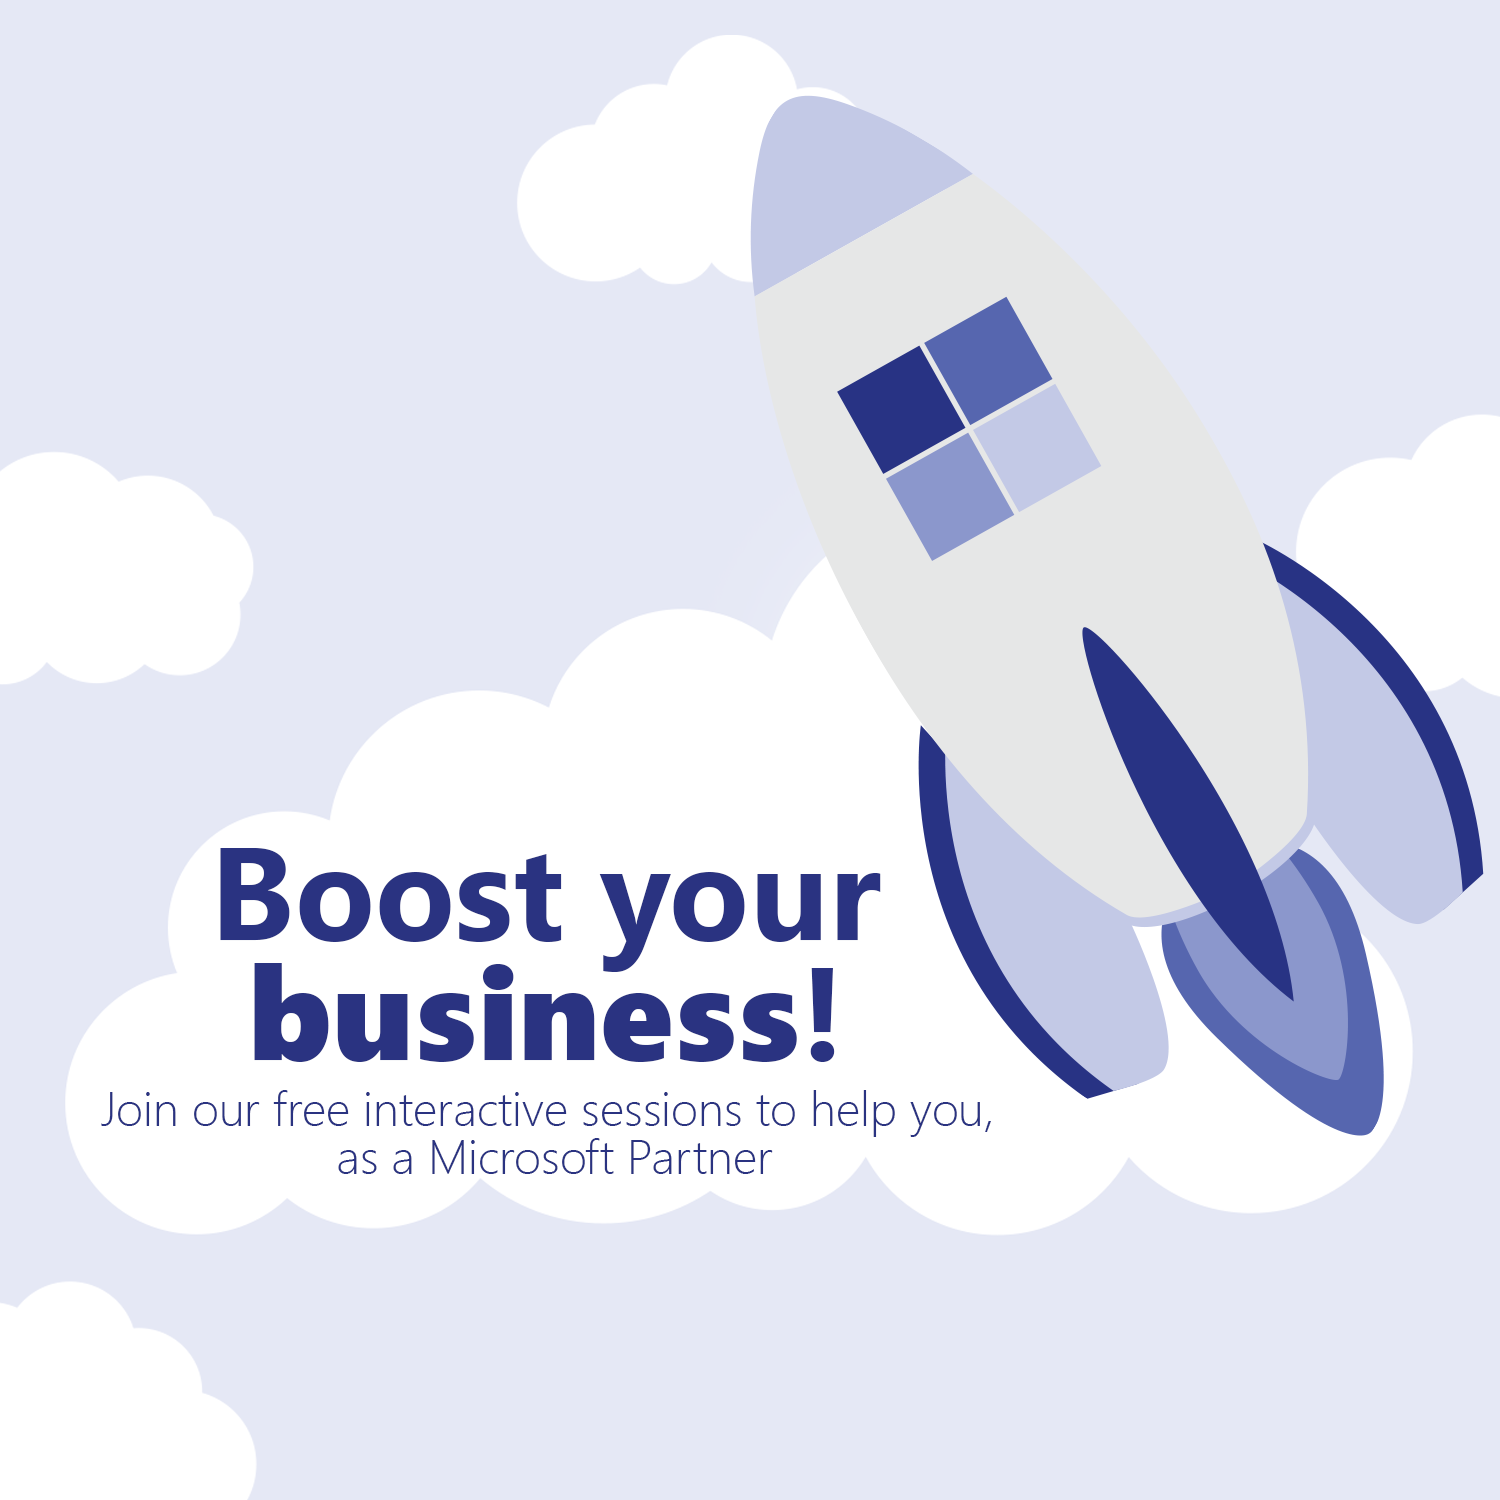 Boost-Your-Business-Raket